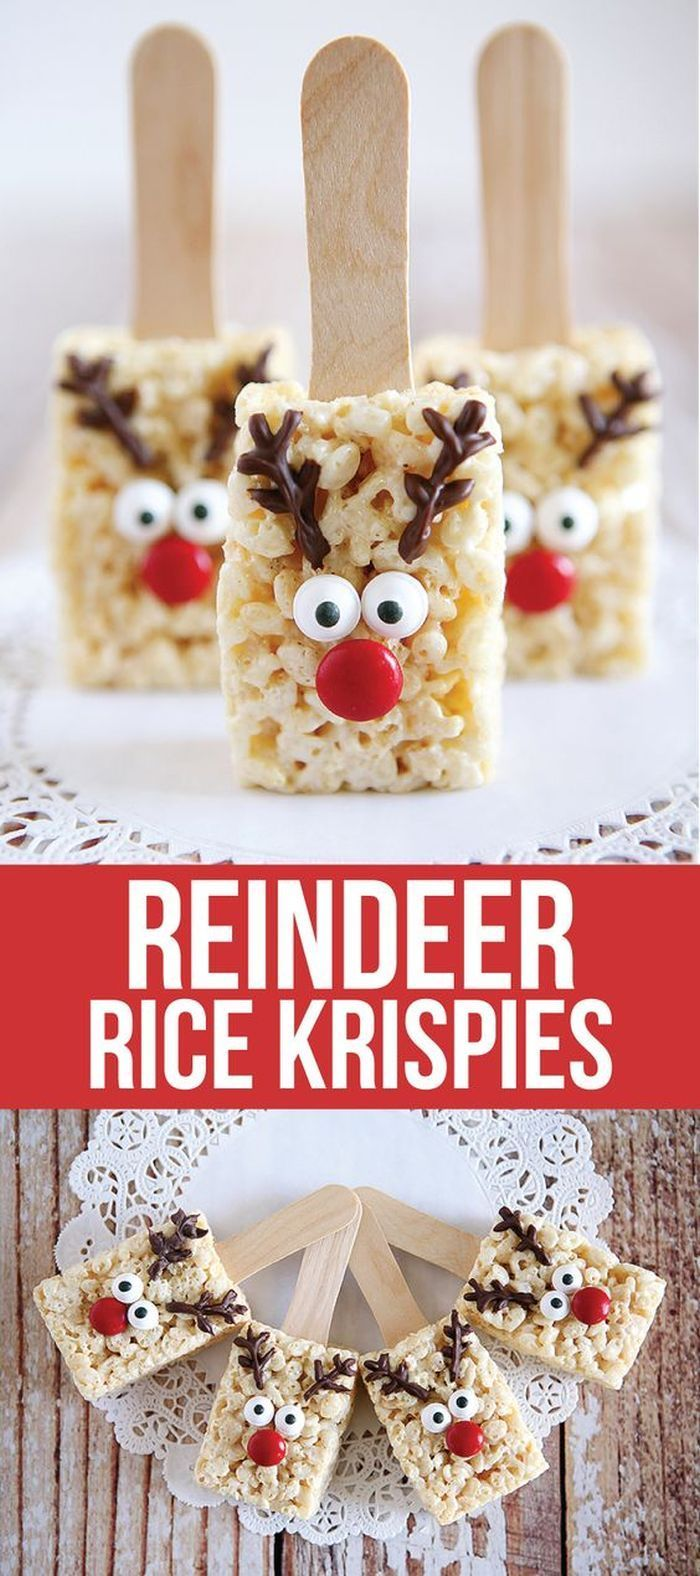 Home handmade candies chocolate dipped rice krispy treats 2 - 9 Great Christmas Diy Projects